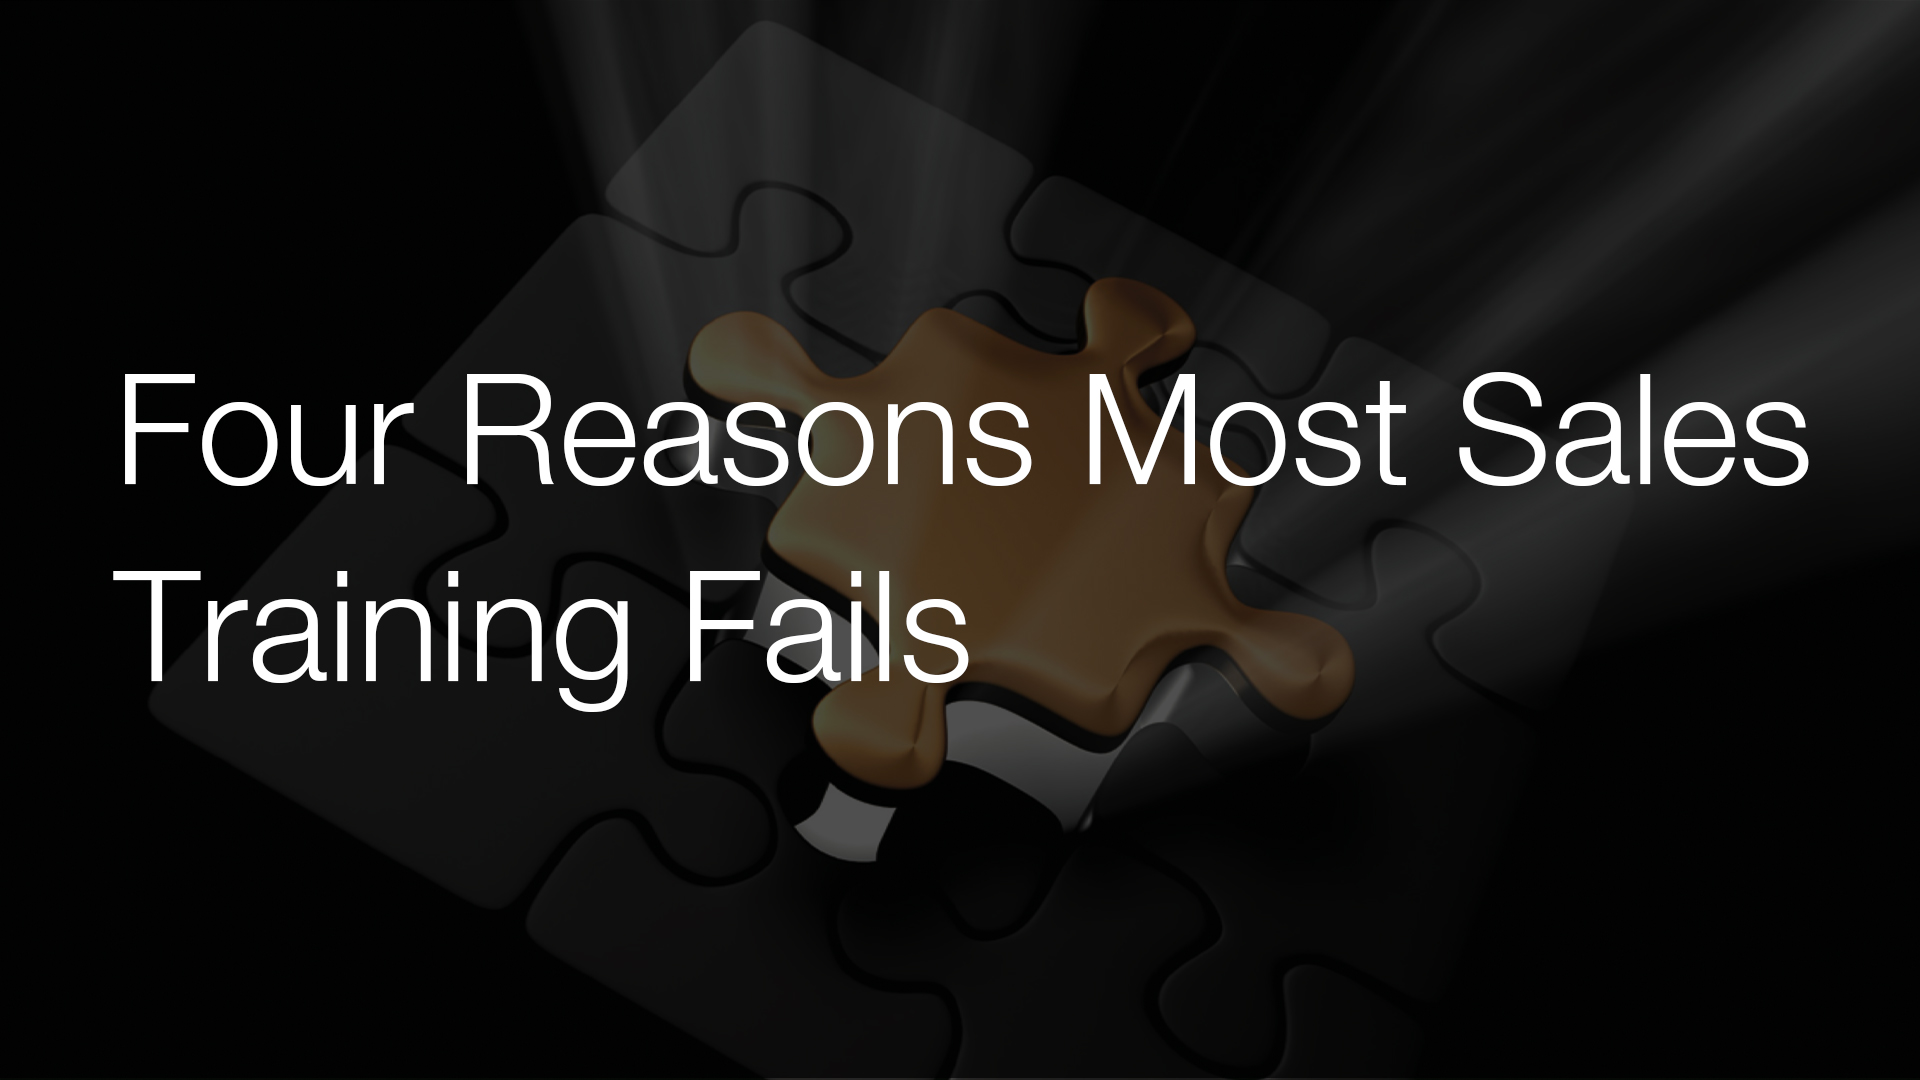 Four Reasons Most Sales Training Fails